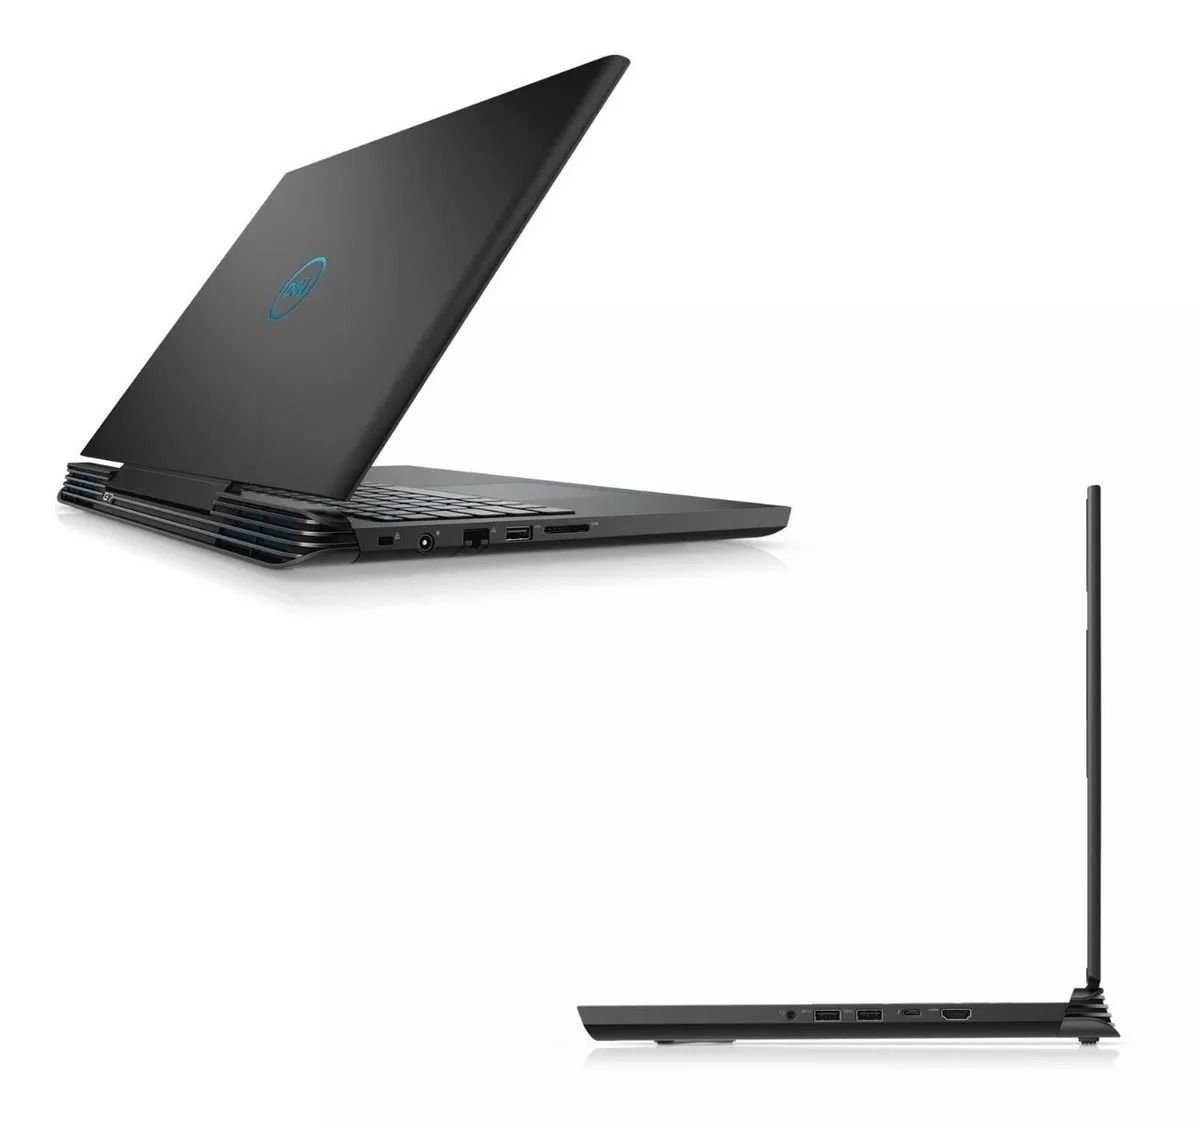 Notebook Dell G7 7588 Core I7 8750H Memoria 8Gb Hd 1Tb Ssd 128Gb Placa Video Gtx 1050 4Gb Tela 15.6' Fhd Sistema Linux